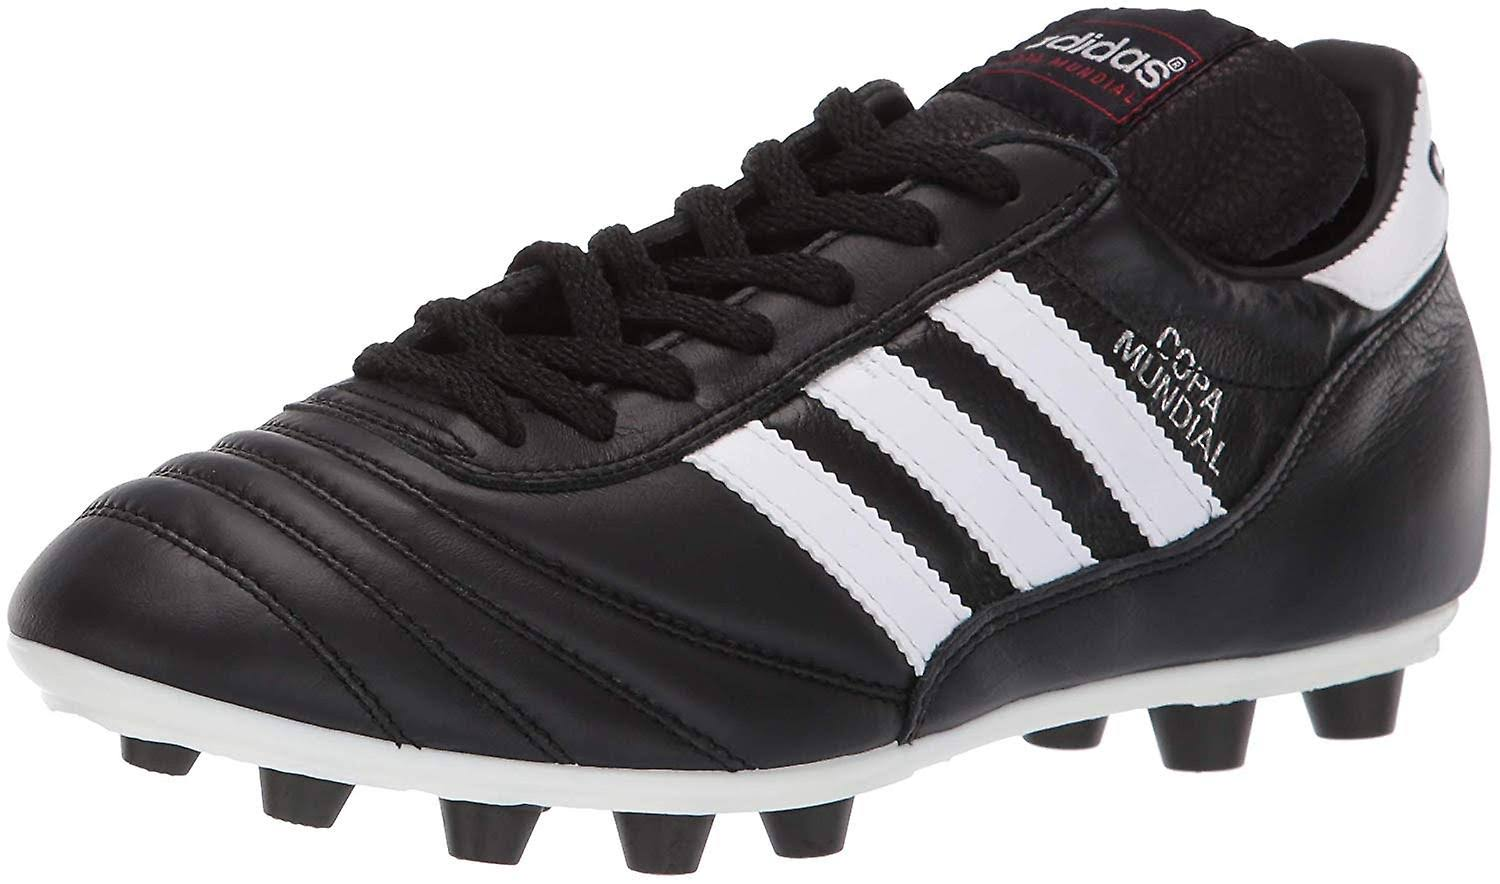 Adidas Men's Copa Mundial Leather Soccer Cleats - Black & White, 9.5 US